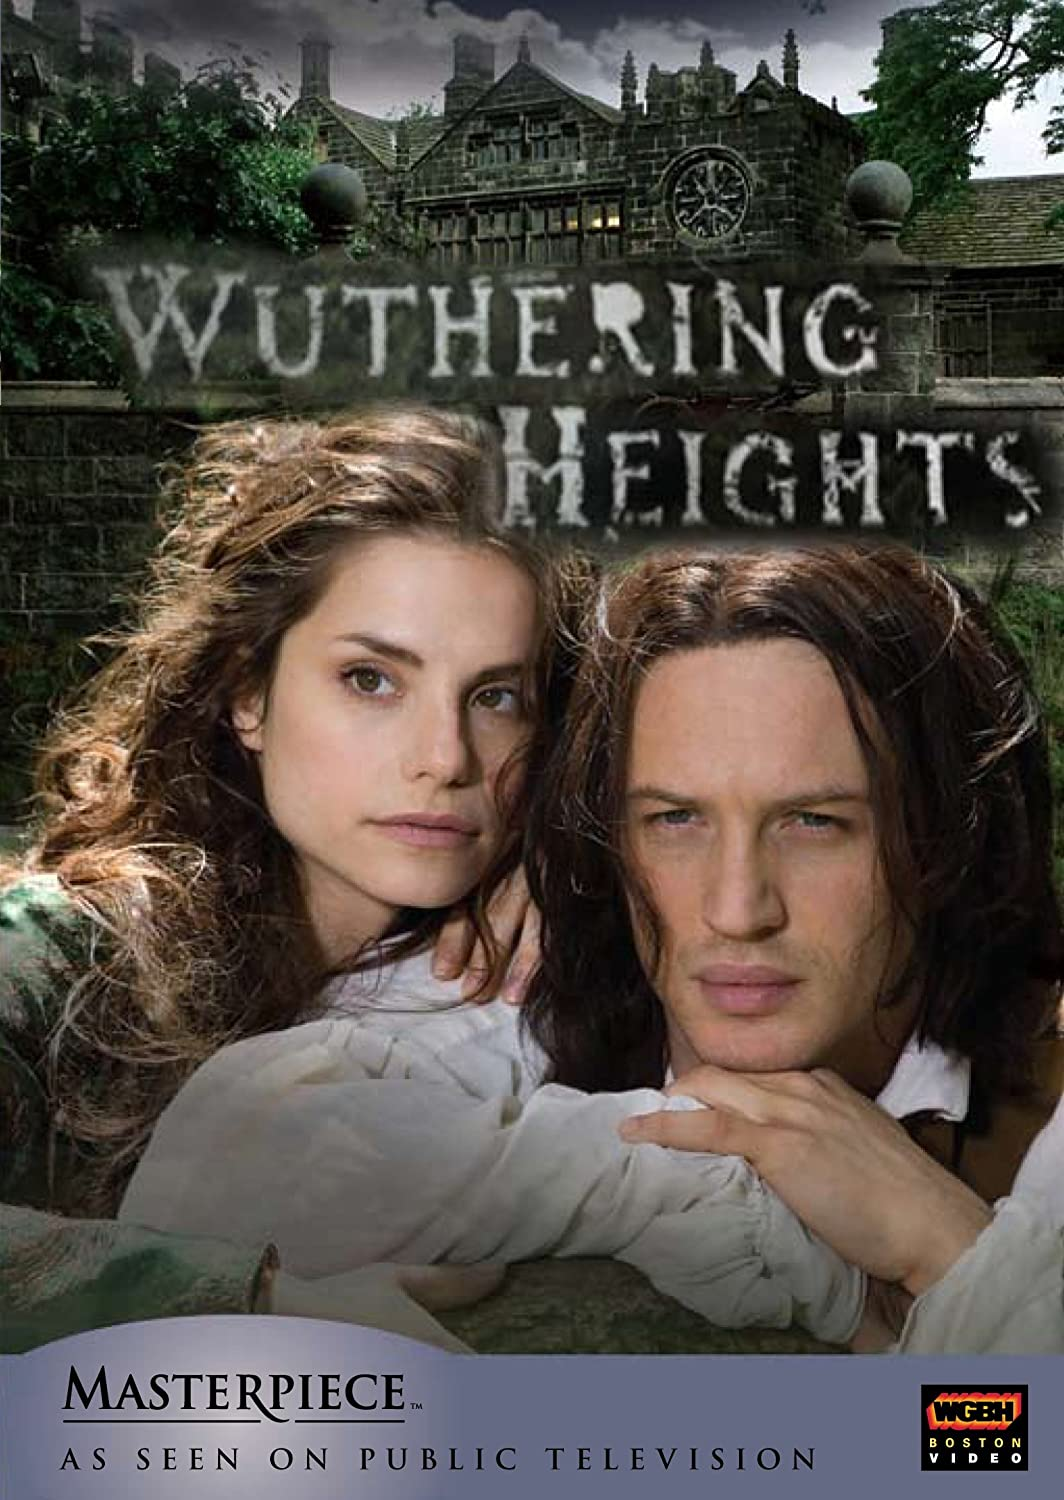 masterpiece wuthering heights ca tom hardy charlotte masterpiece wuthering heights ca tom hardy charlotte riley dvd